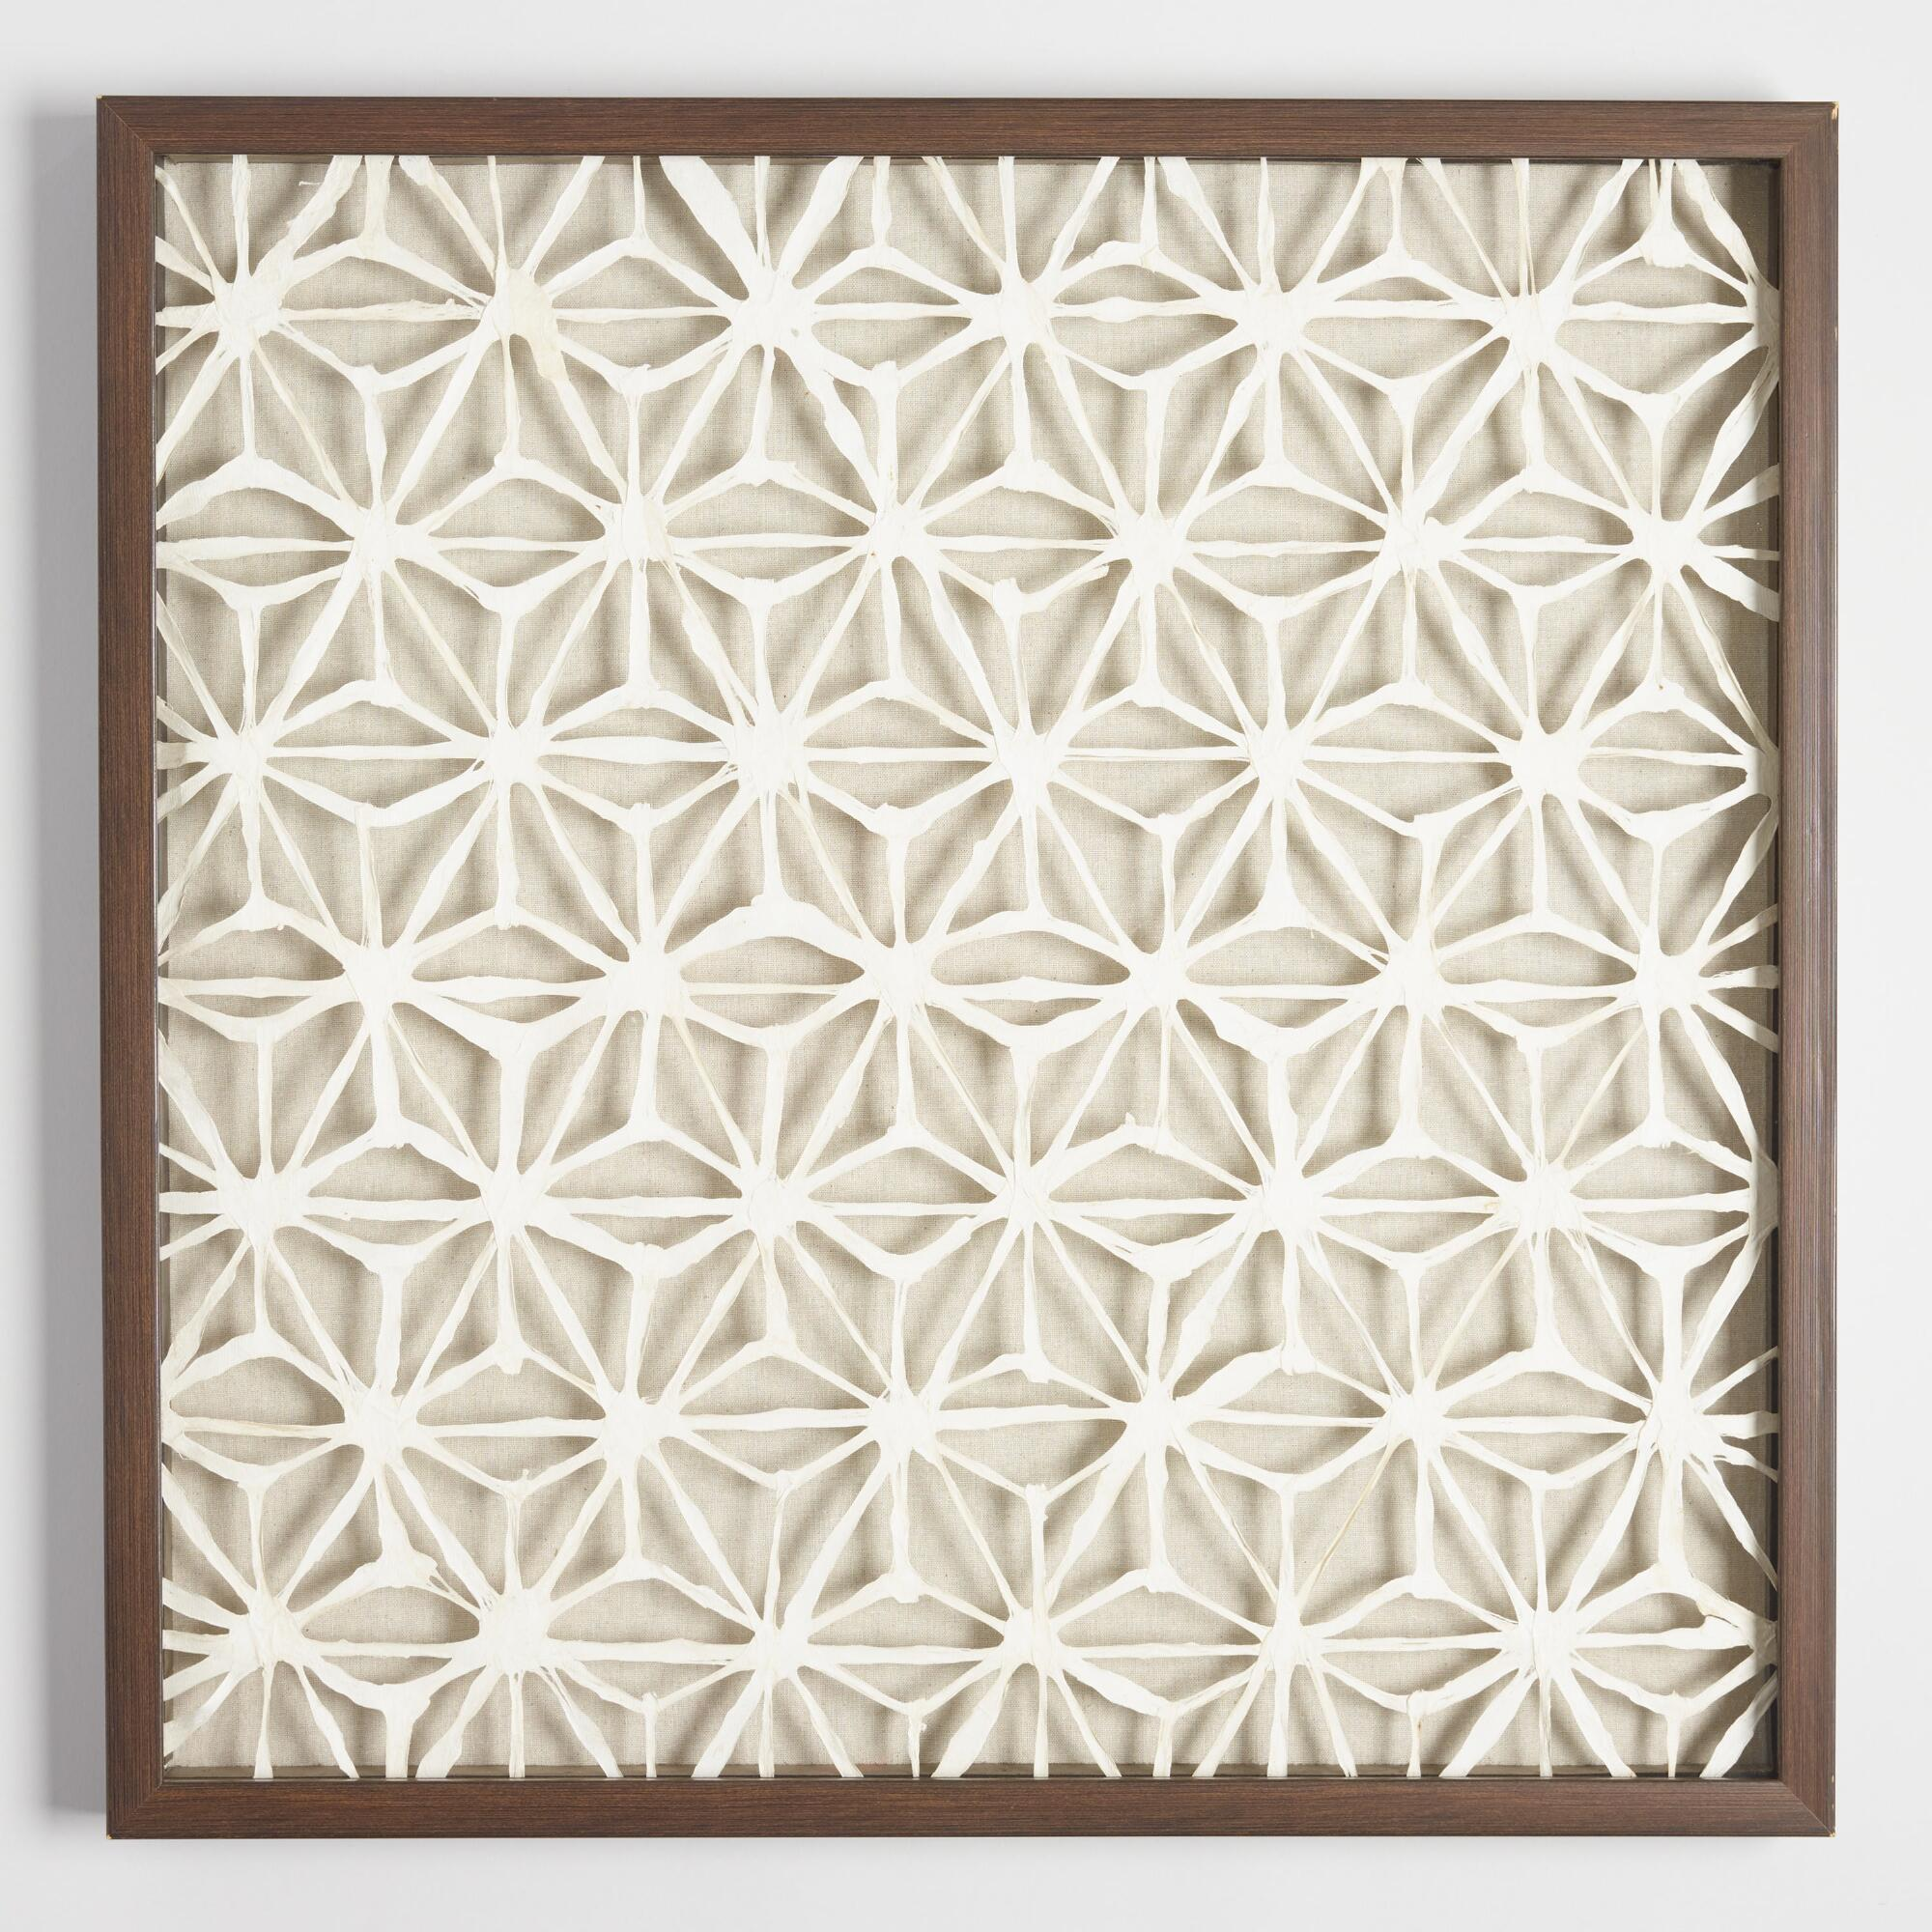 rice paper star shadowbox wall art - Wall Decorations